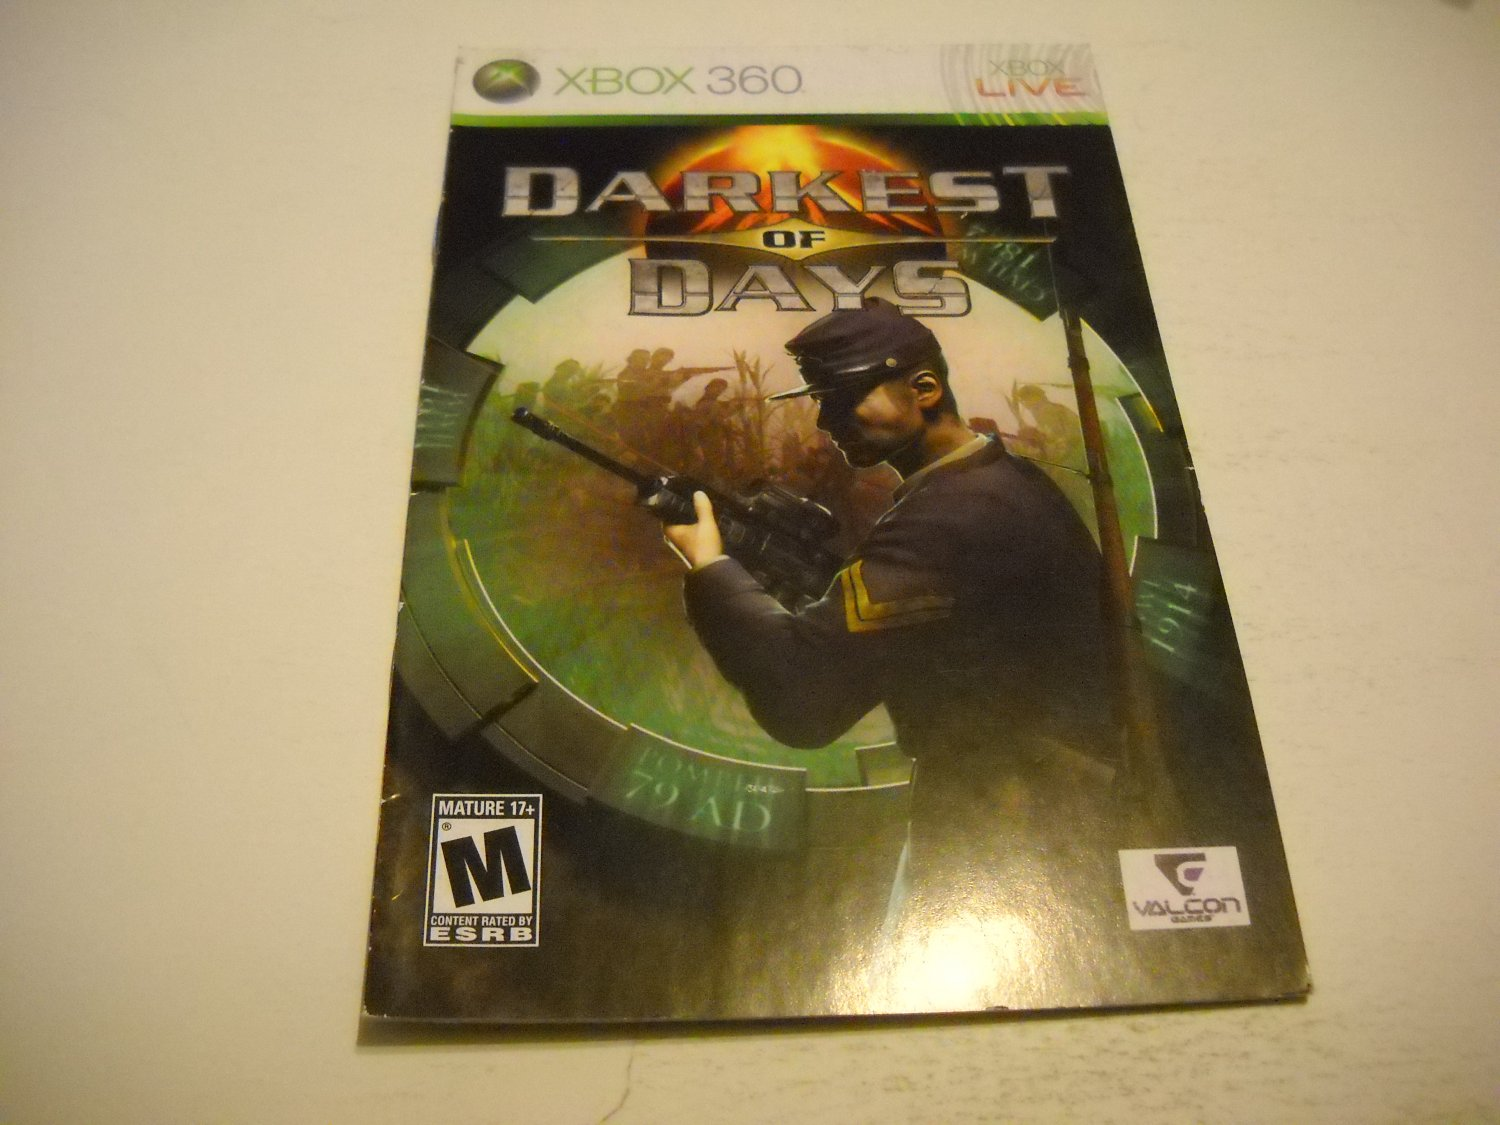 Manual ONLY ~  for Darkest of Days   - Xbox 360 Instruction Booklet